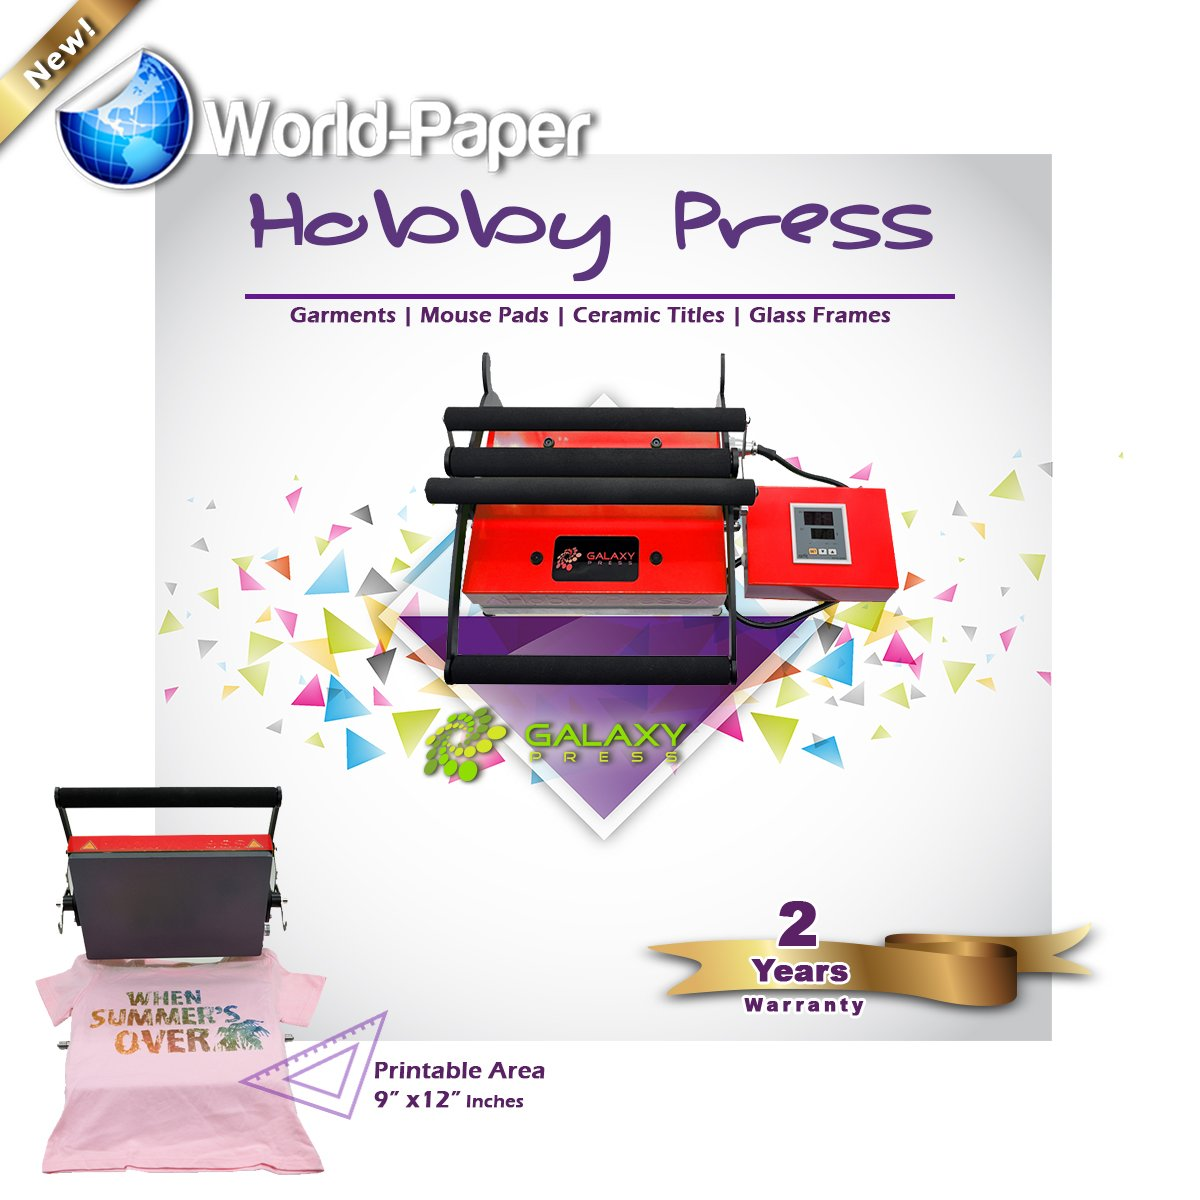 Heat Press Galaxy Hobby Designed for Portability and Reliability for customizing tshirts